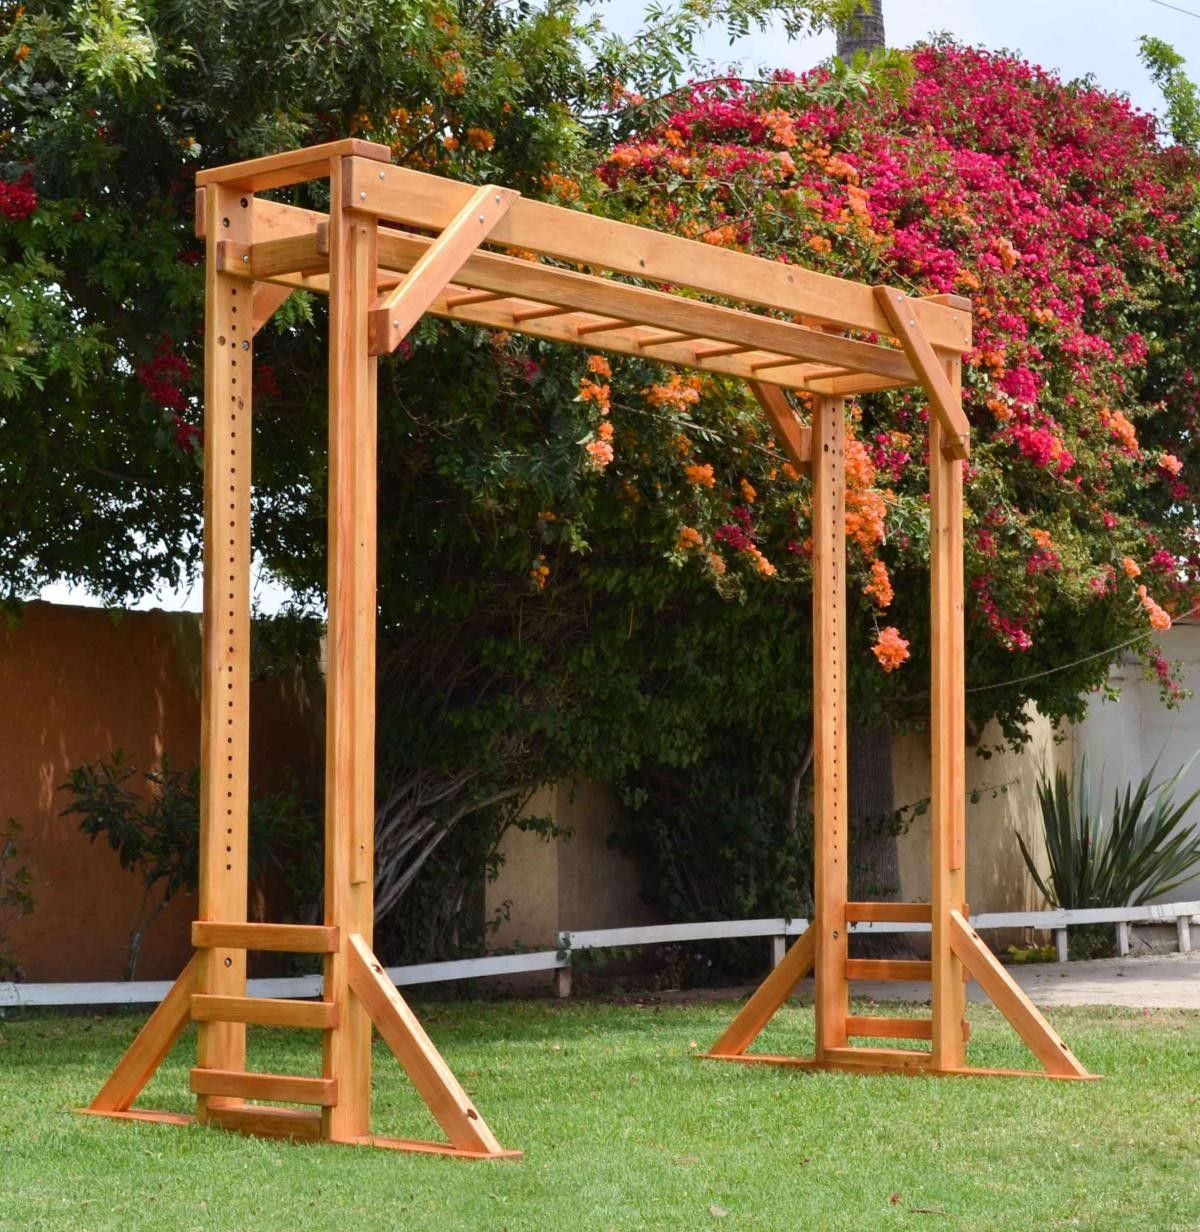 How To Build Monkey Bars Google Search Woodworking Projects